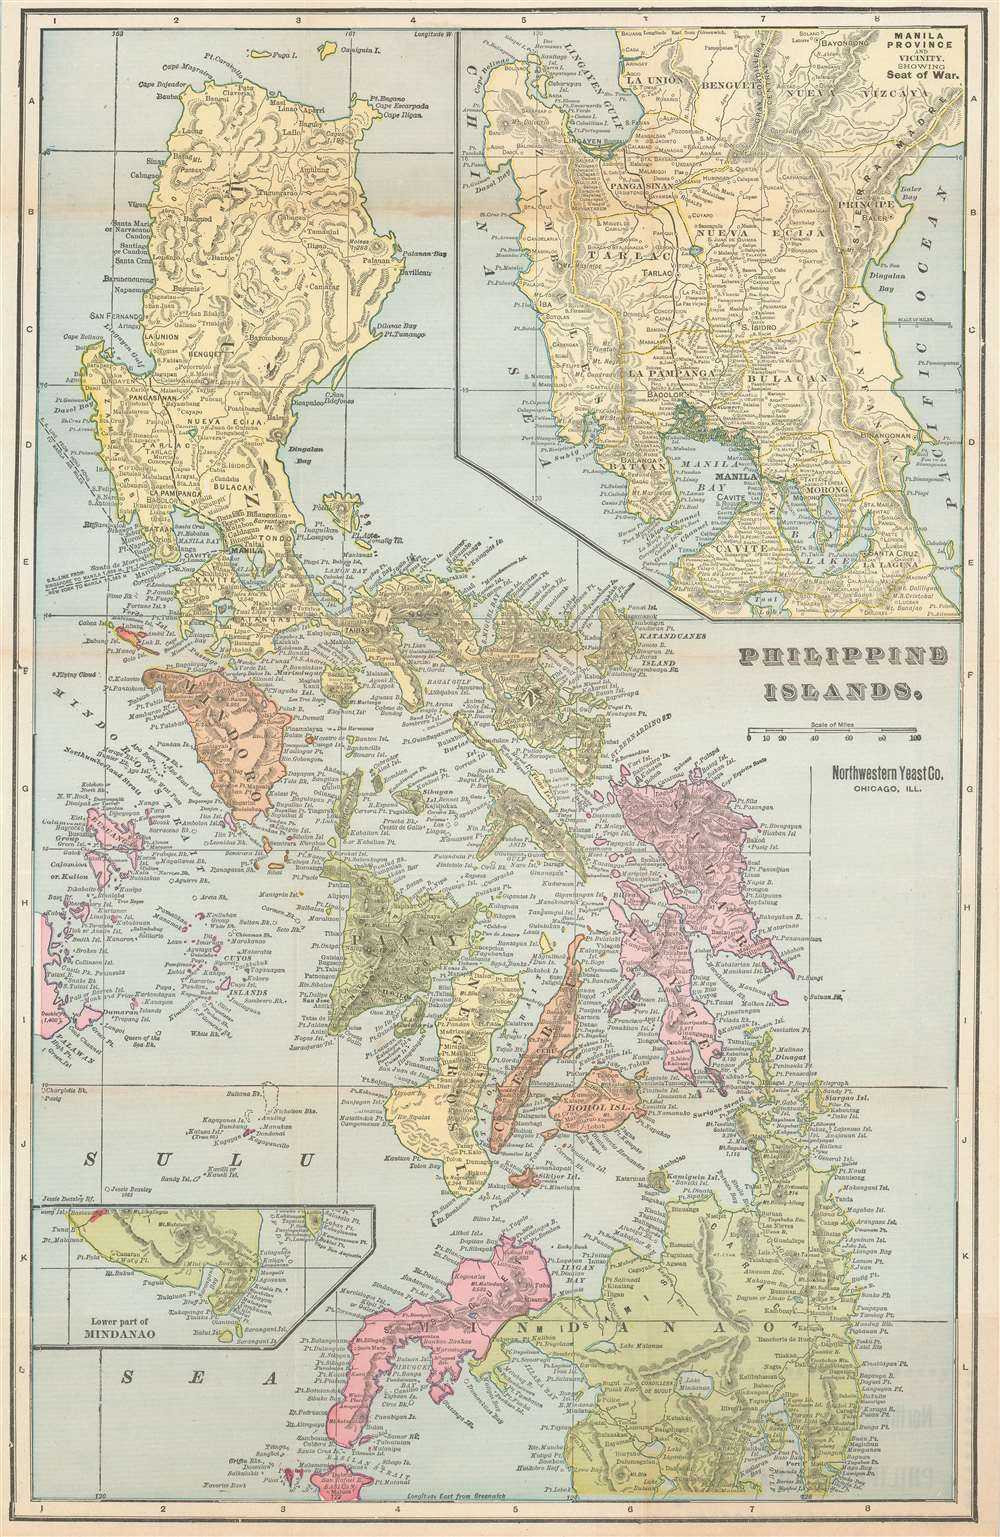 1899 Fort Dearborn Publishing Co. Map of the Philippines